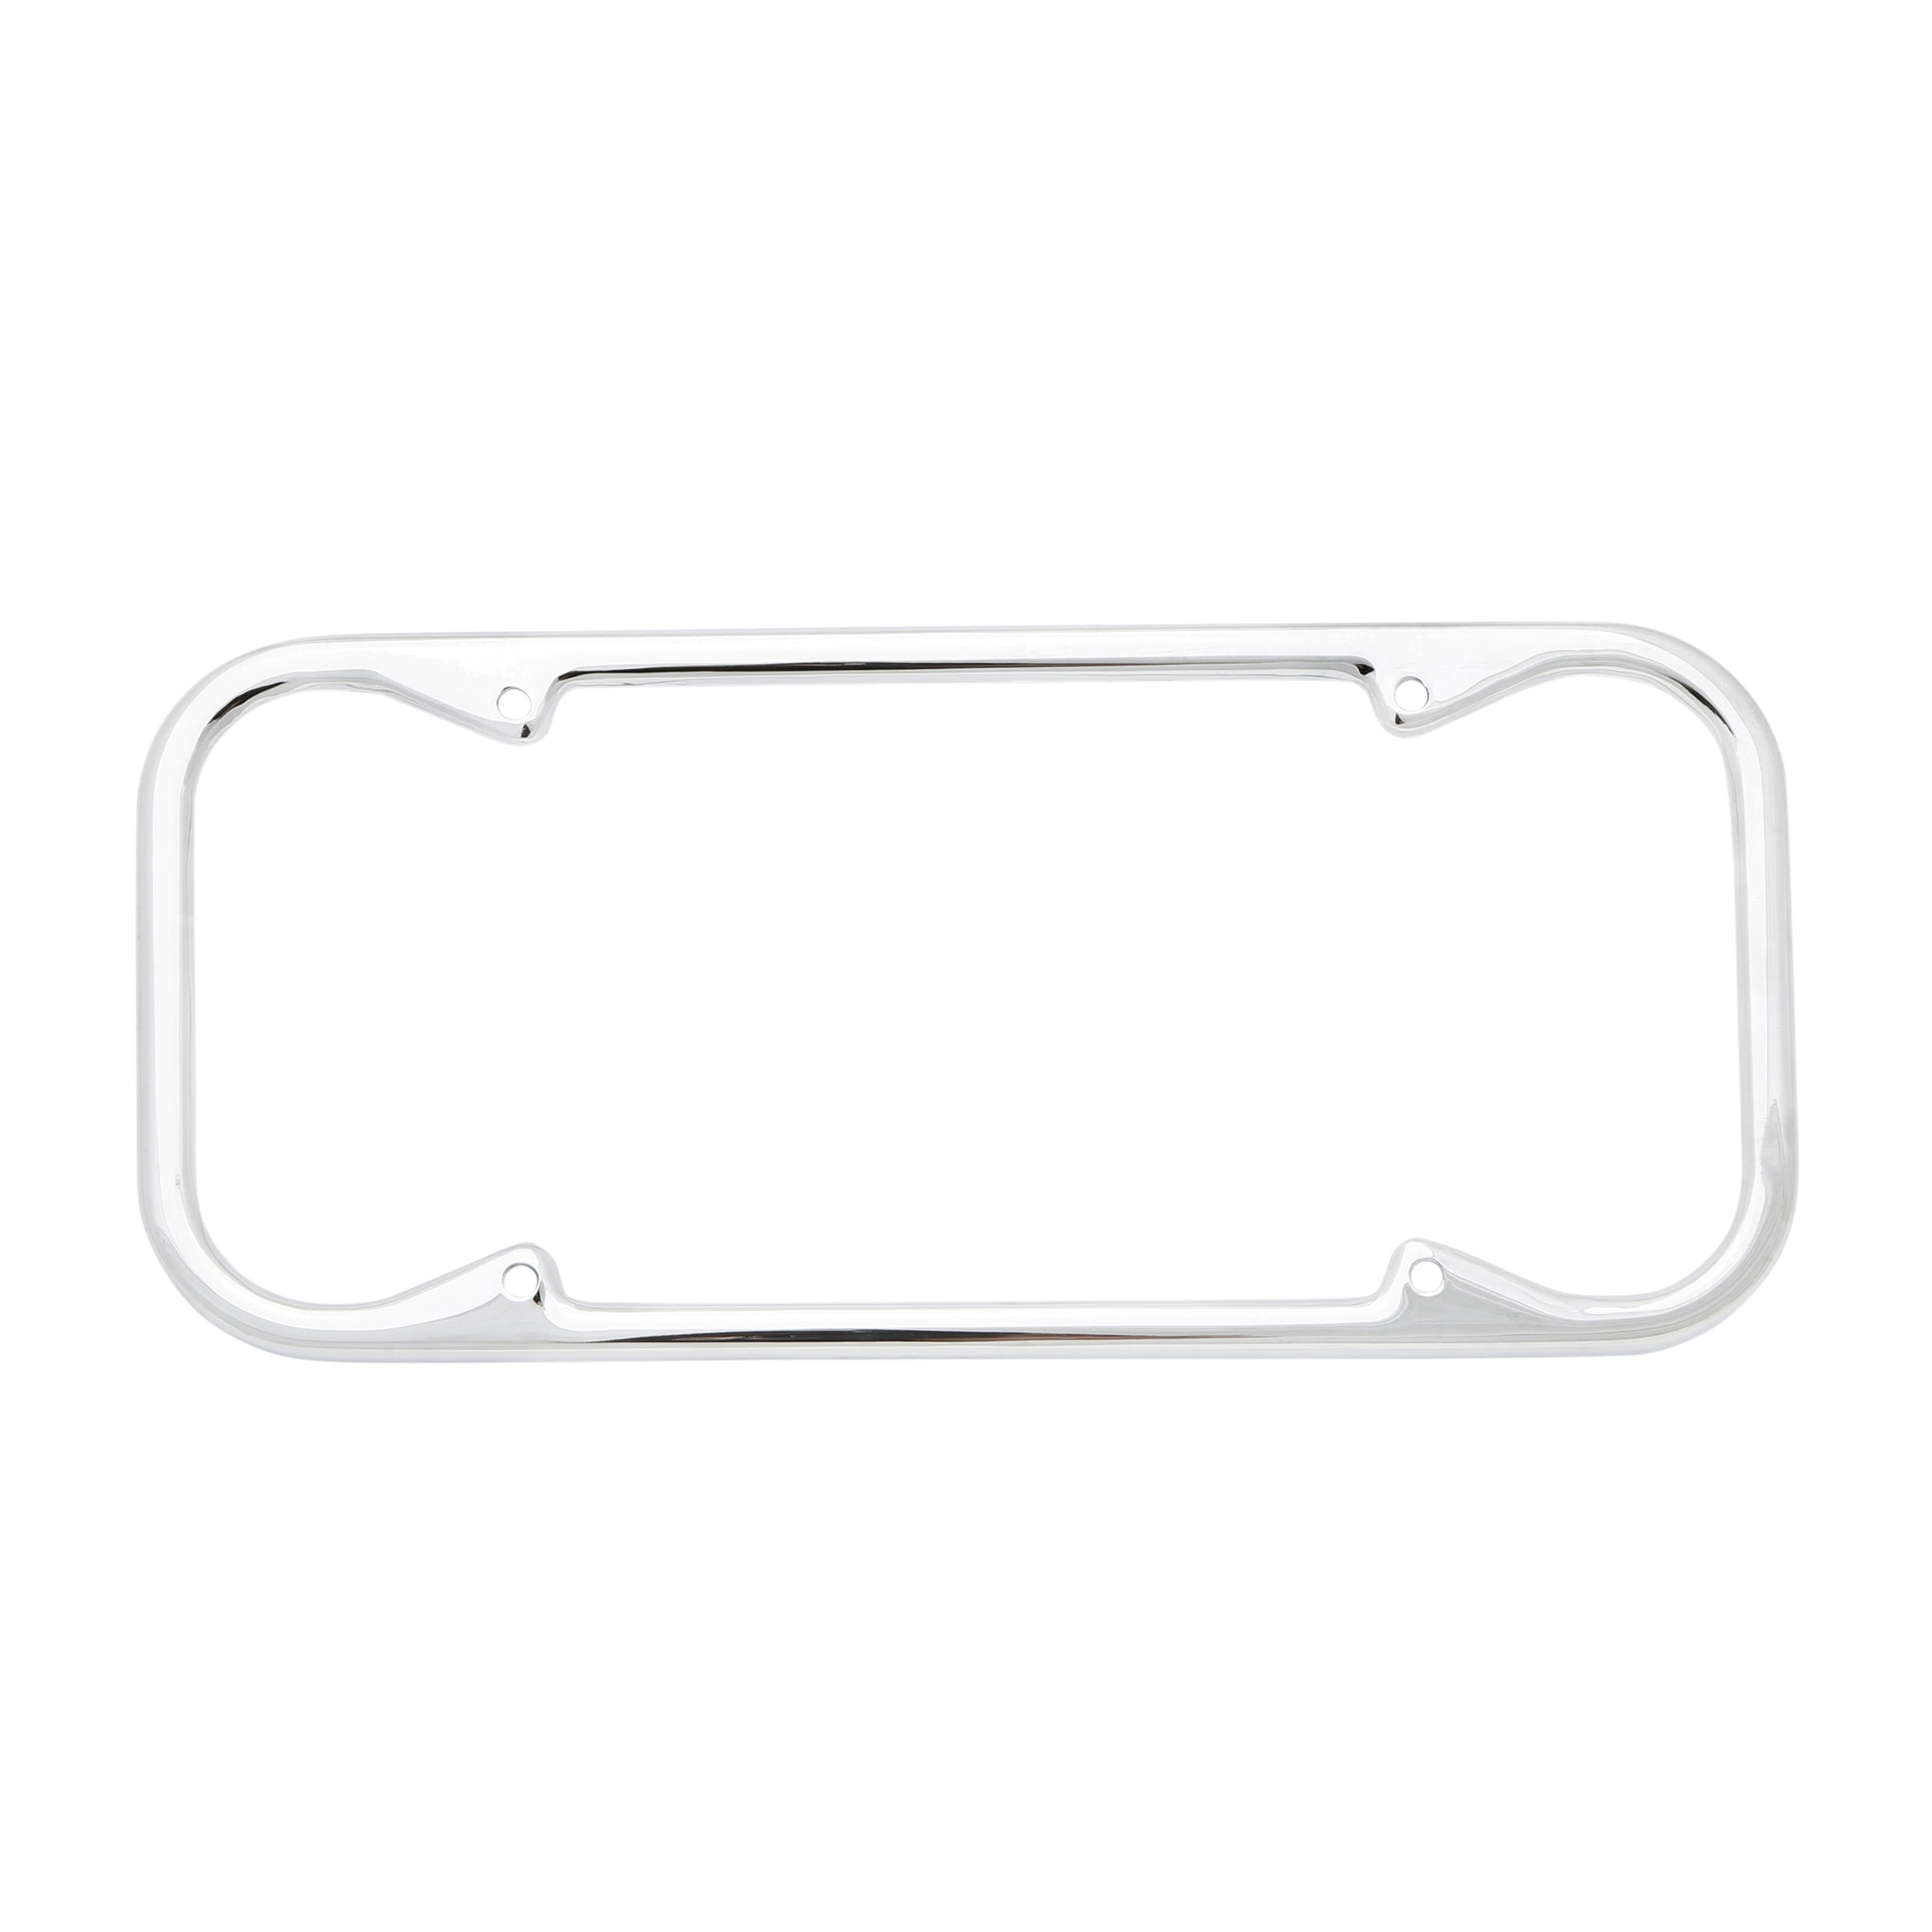 "License Plate Frame Ford (14"" x 6"") • 1940-55 Ford"